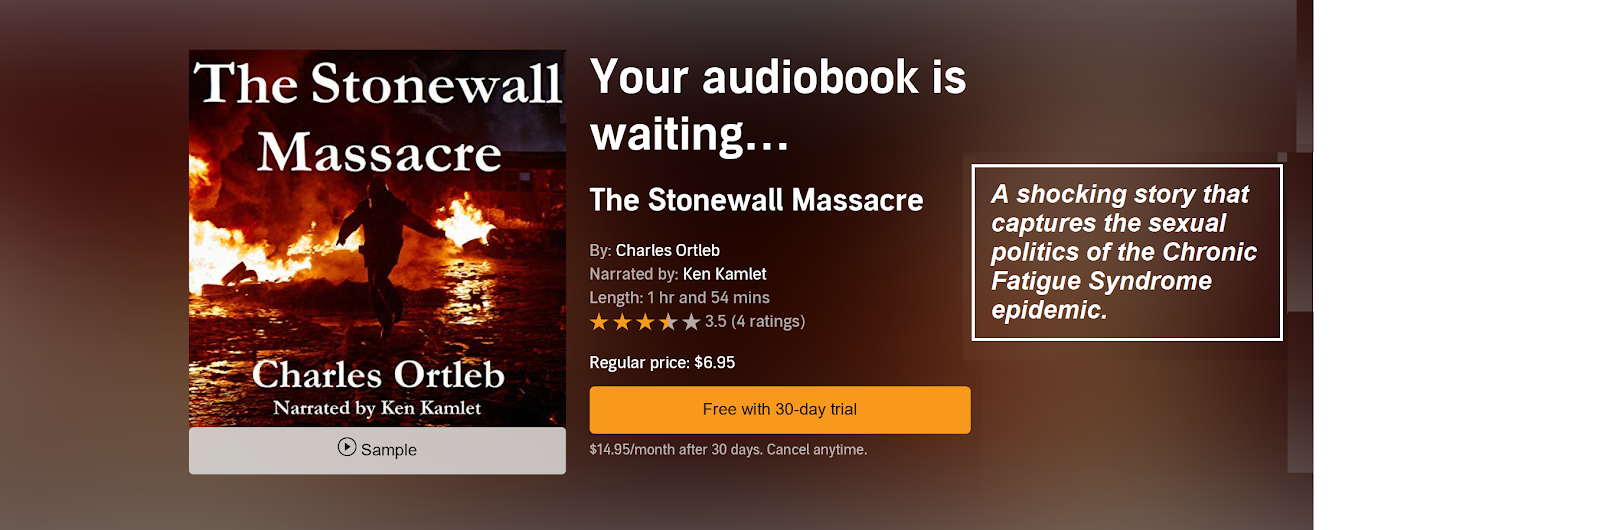 Stonewall Audible